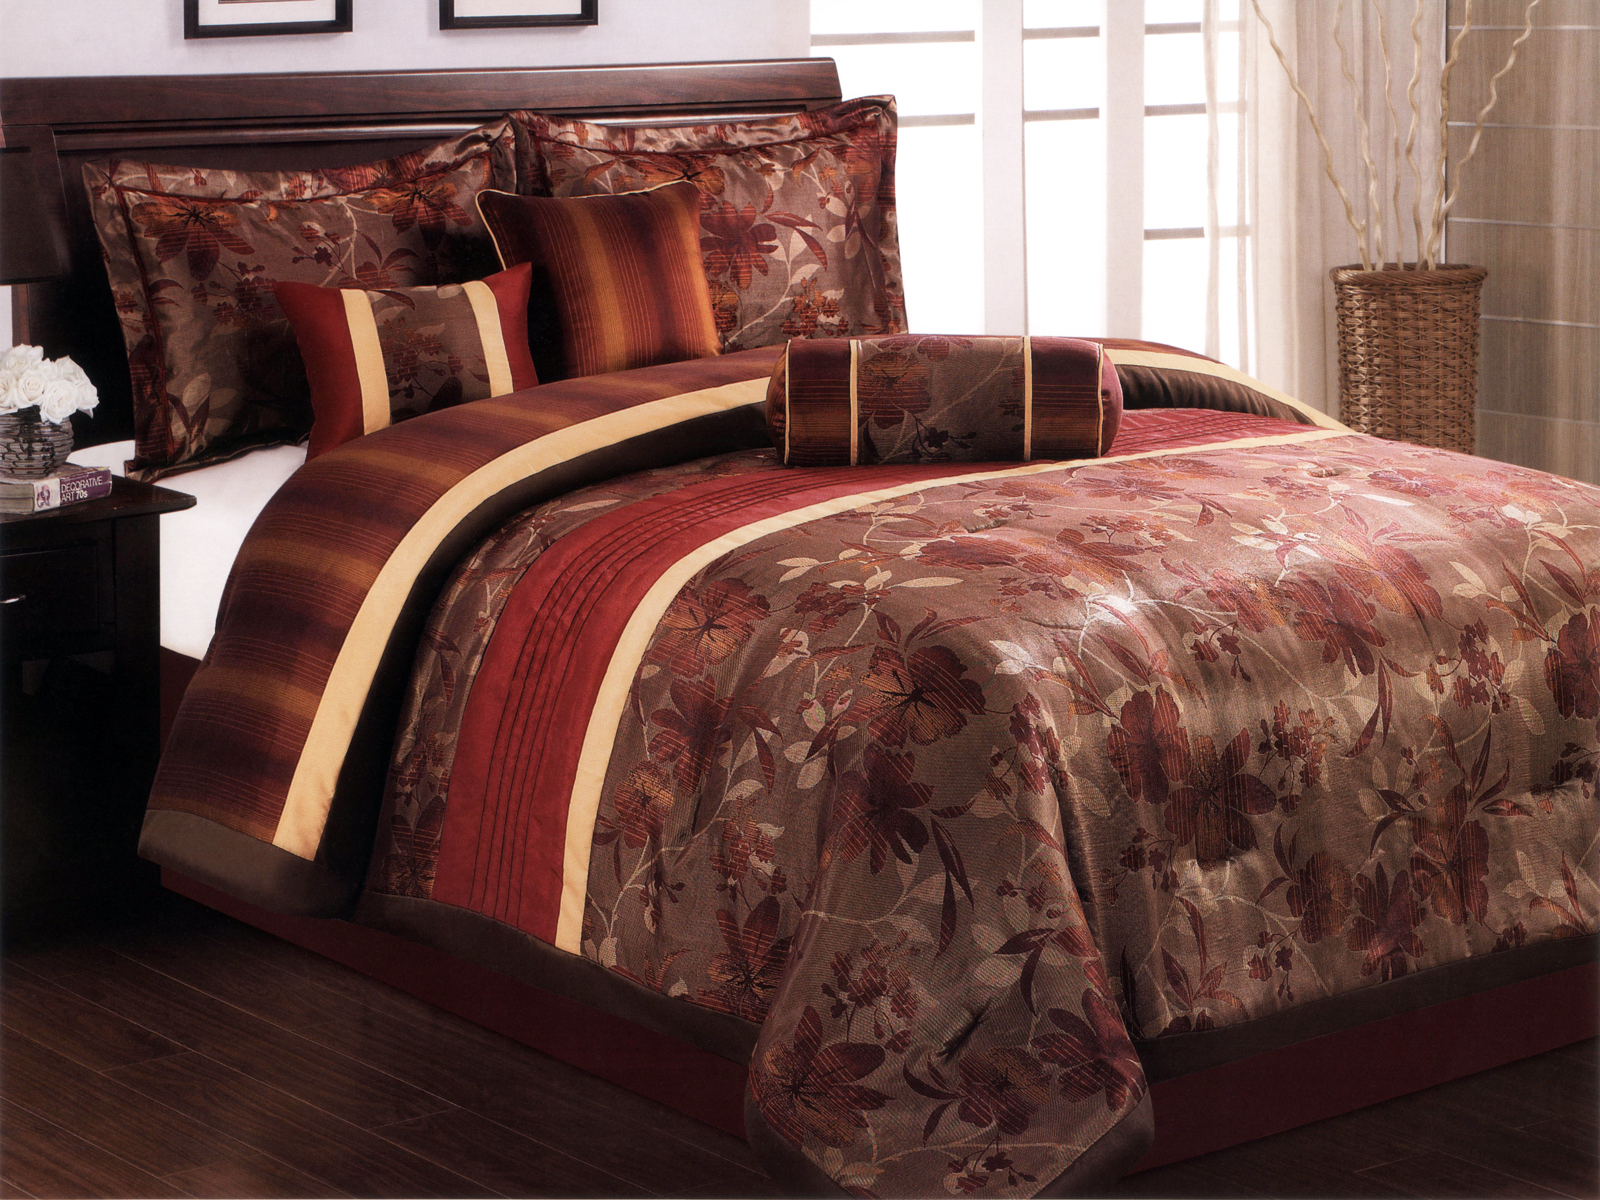 cotton rust dp comforter orange piece and quilt collection com kitchen home twin solid shams washed set amazon chezmoi vintage